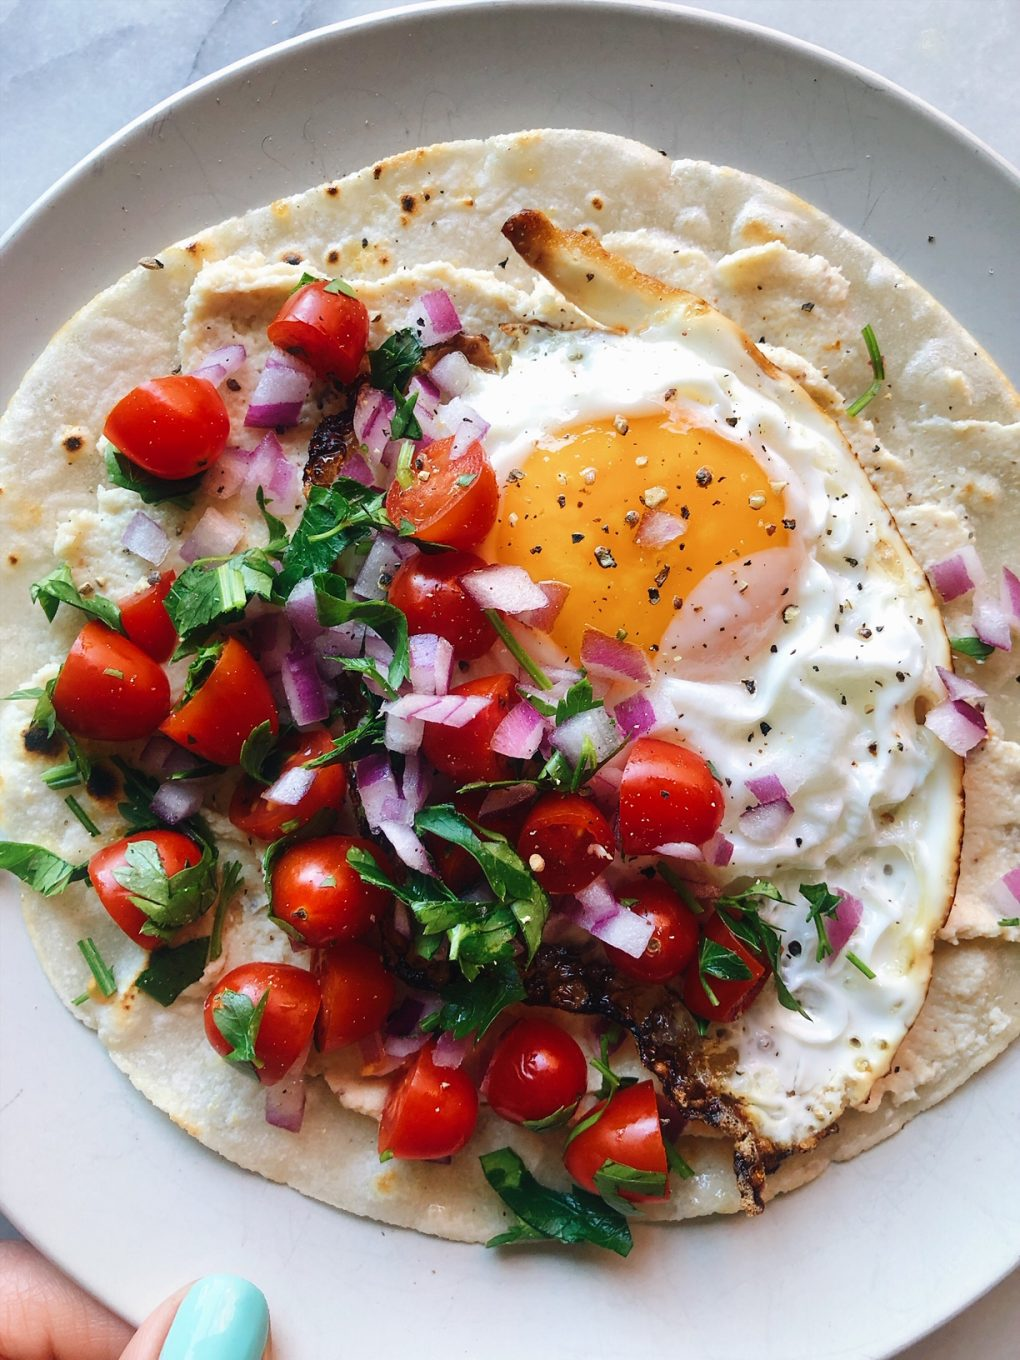 An open faced Mediterranean breakfast taco with a fried egg and tomato + herb salad held by a left hand with teal fingernails on a white plate and white background